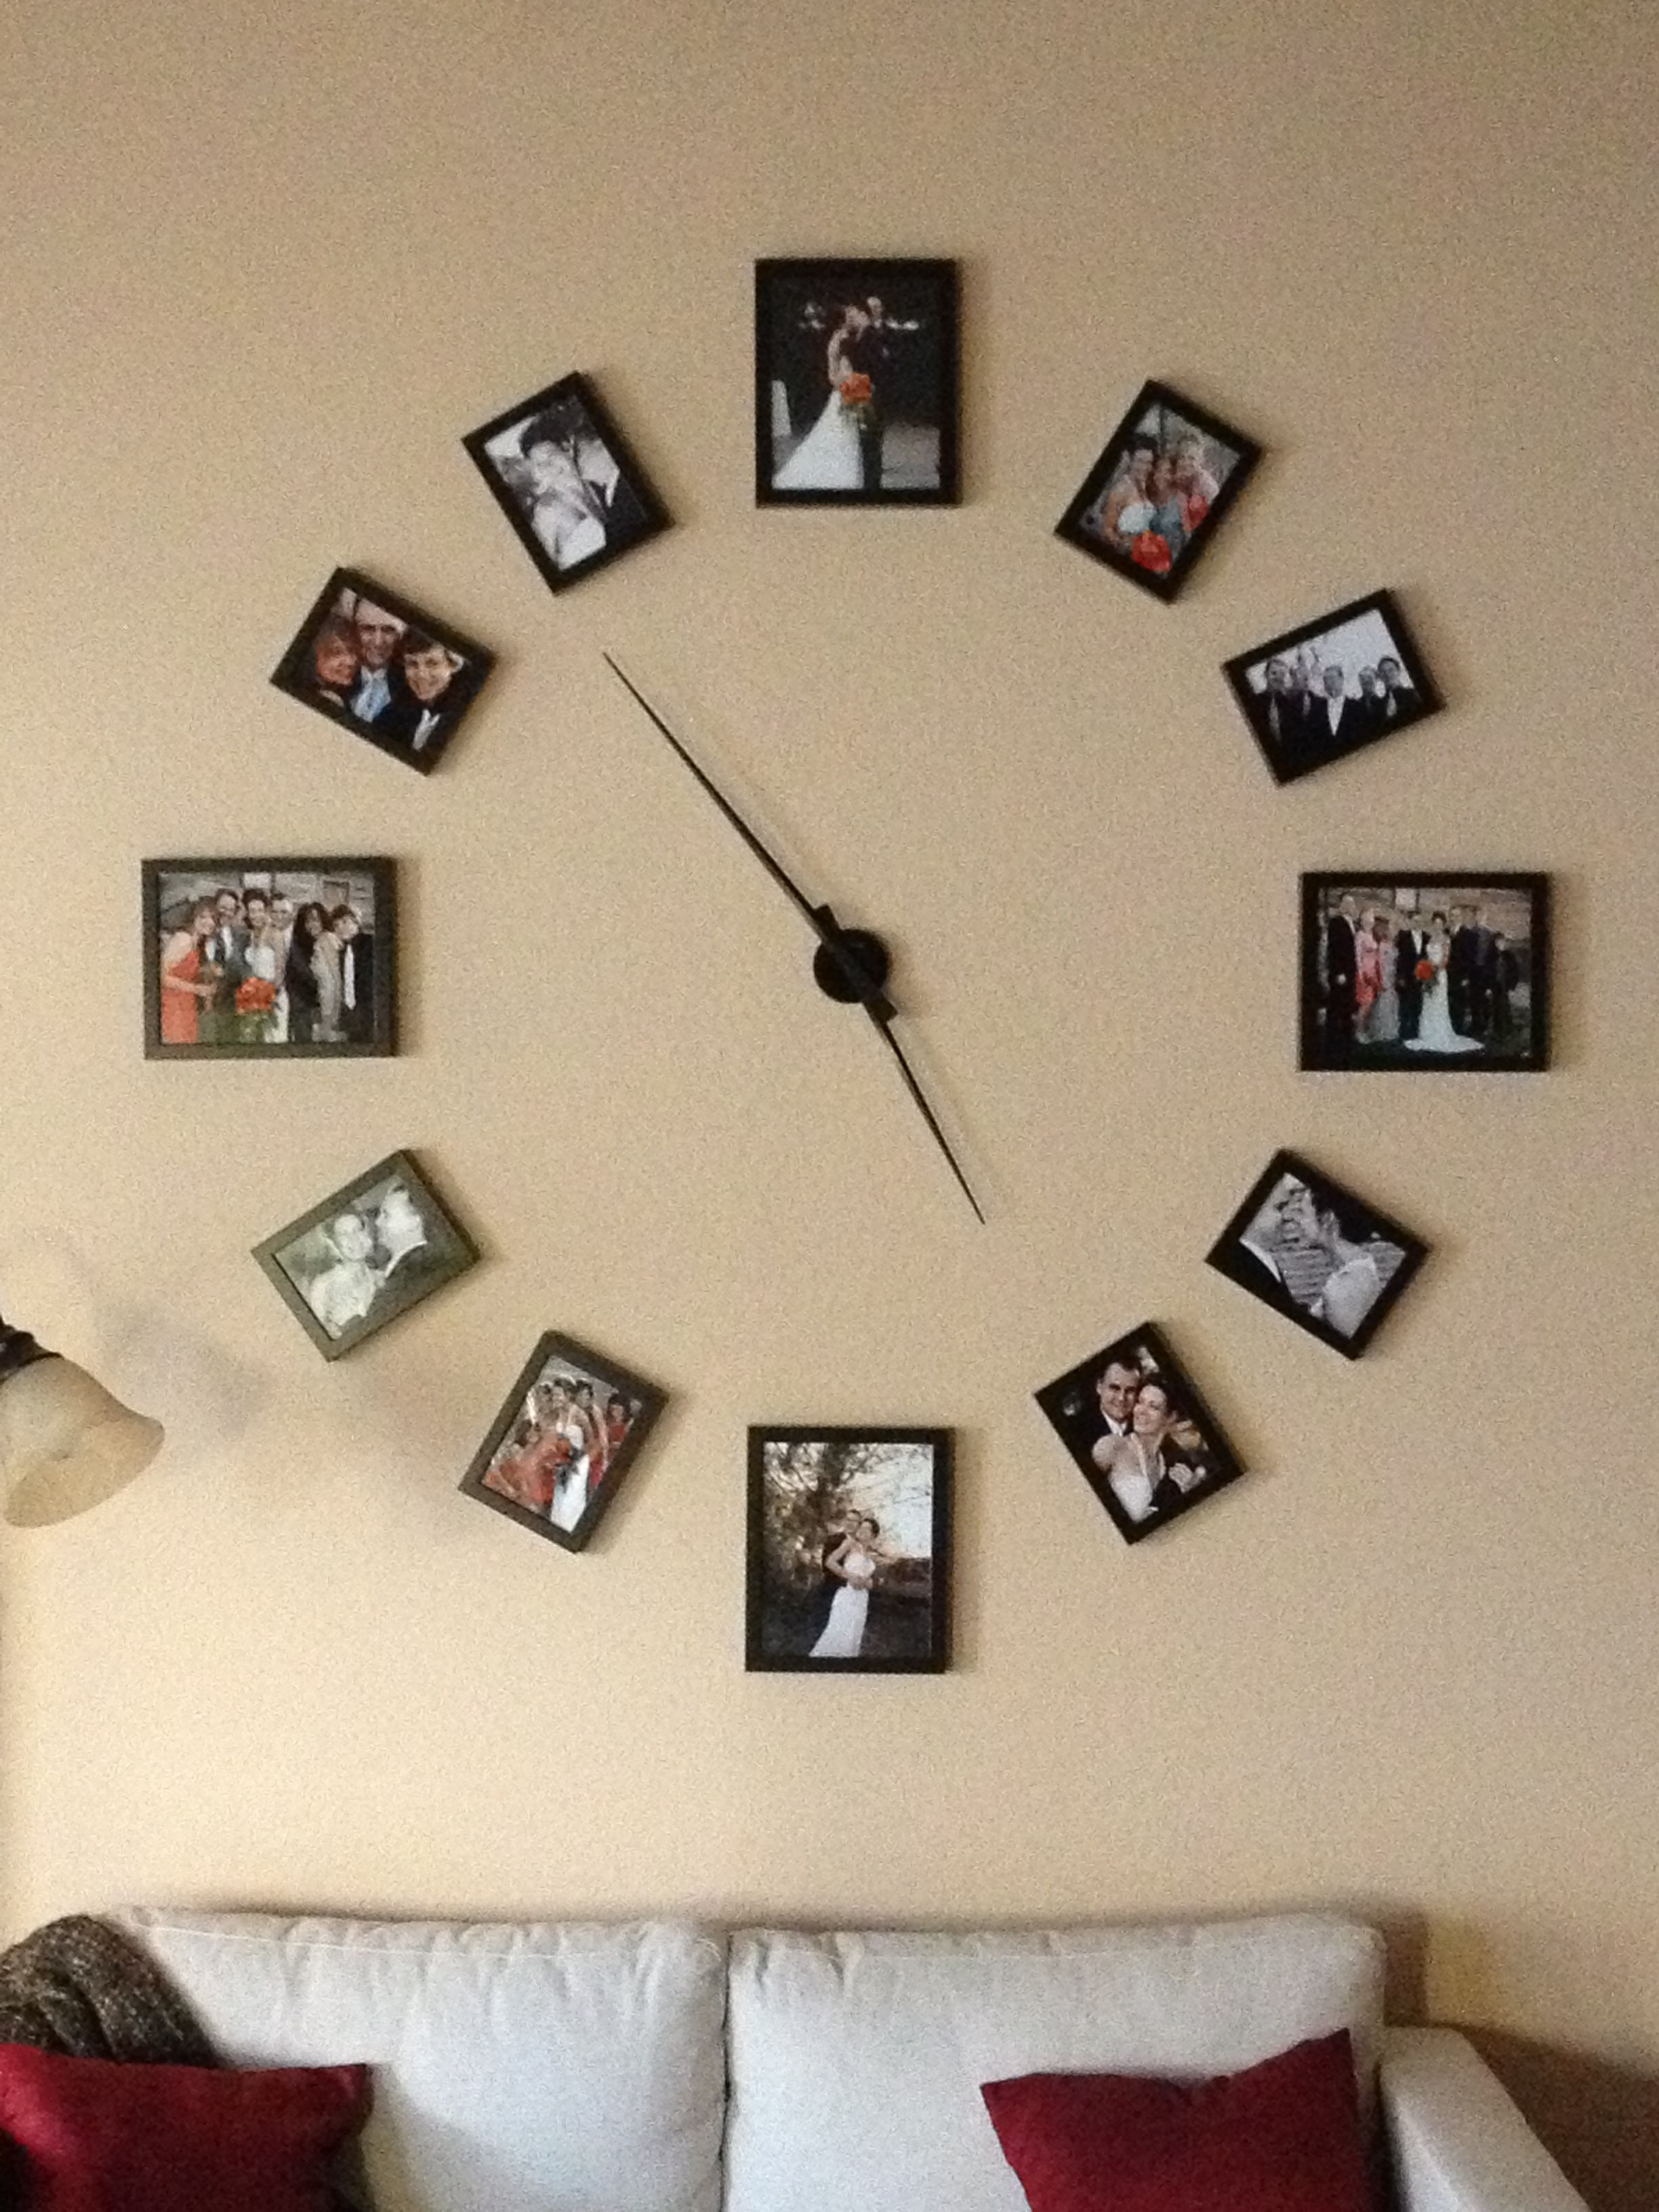 Am americana country wall clocks - Really Cool Huge Wall Clock What A Great Way To Display Lots Of Photos